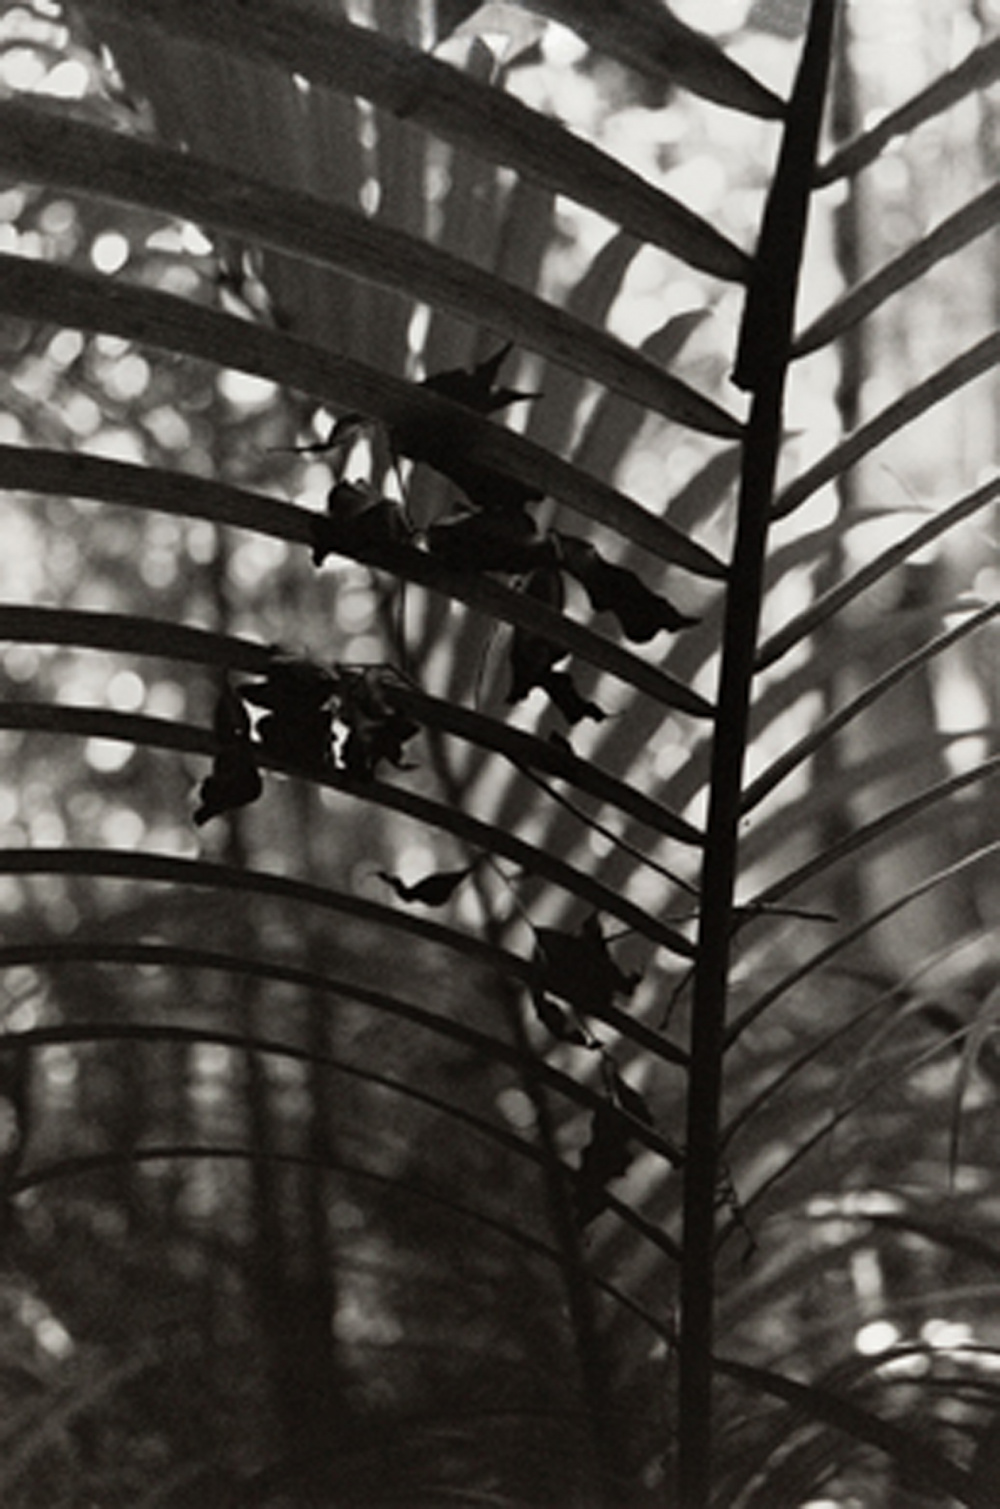 Daniel Steegmann Magrané, Spiral Forest, (detail), 2015. 5 chromogenic prints and 6 gelatin silver prints, 30.3 x 22.4